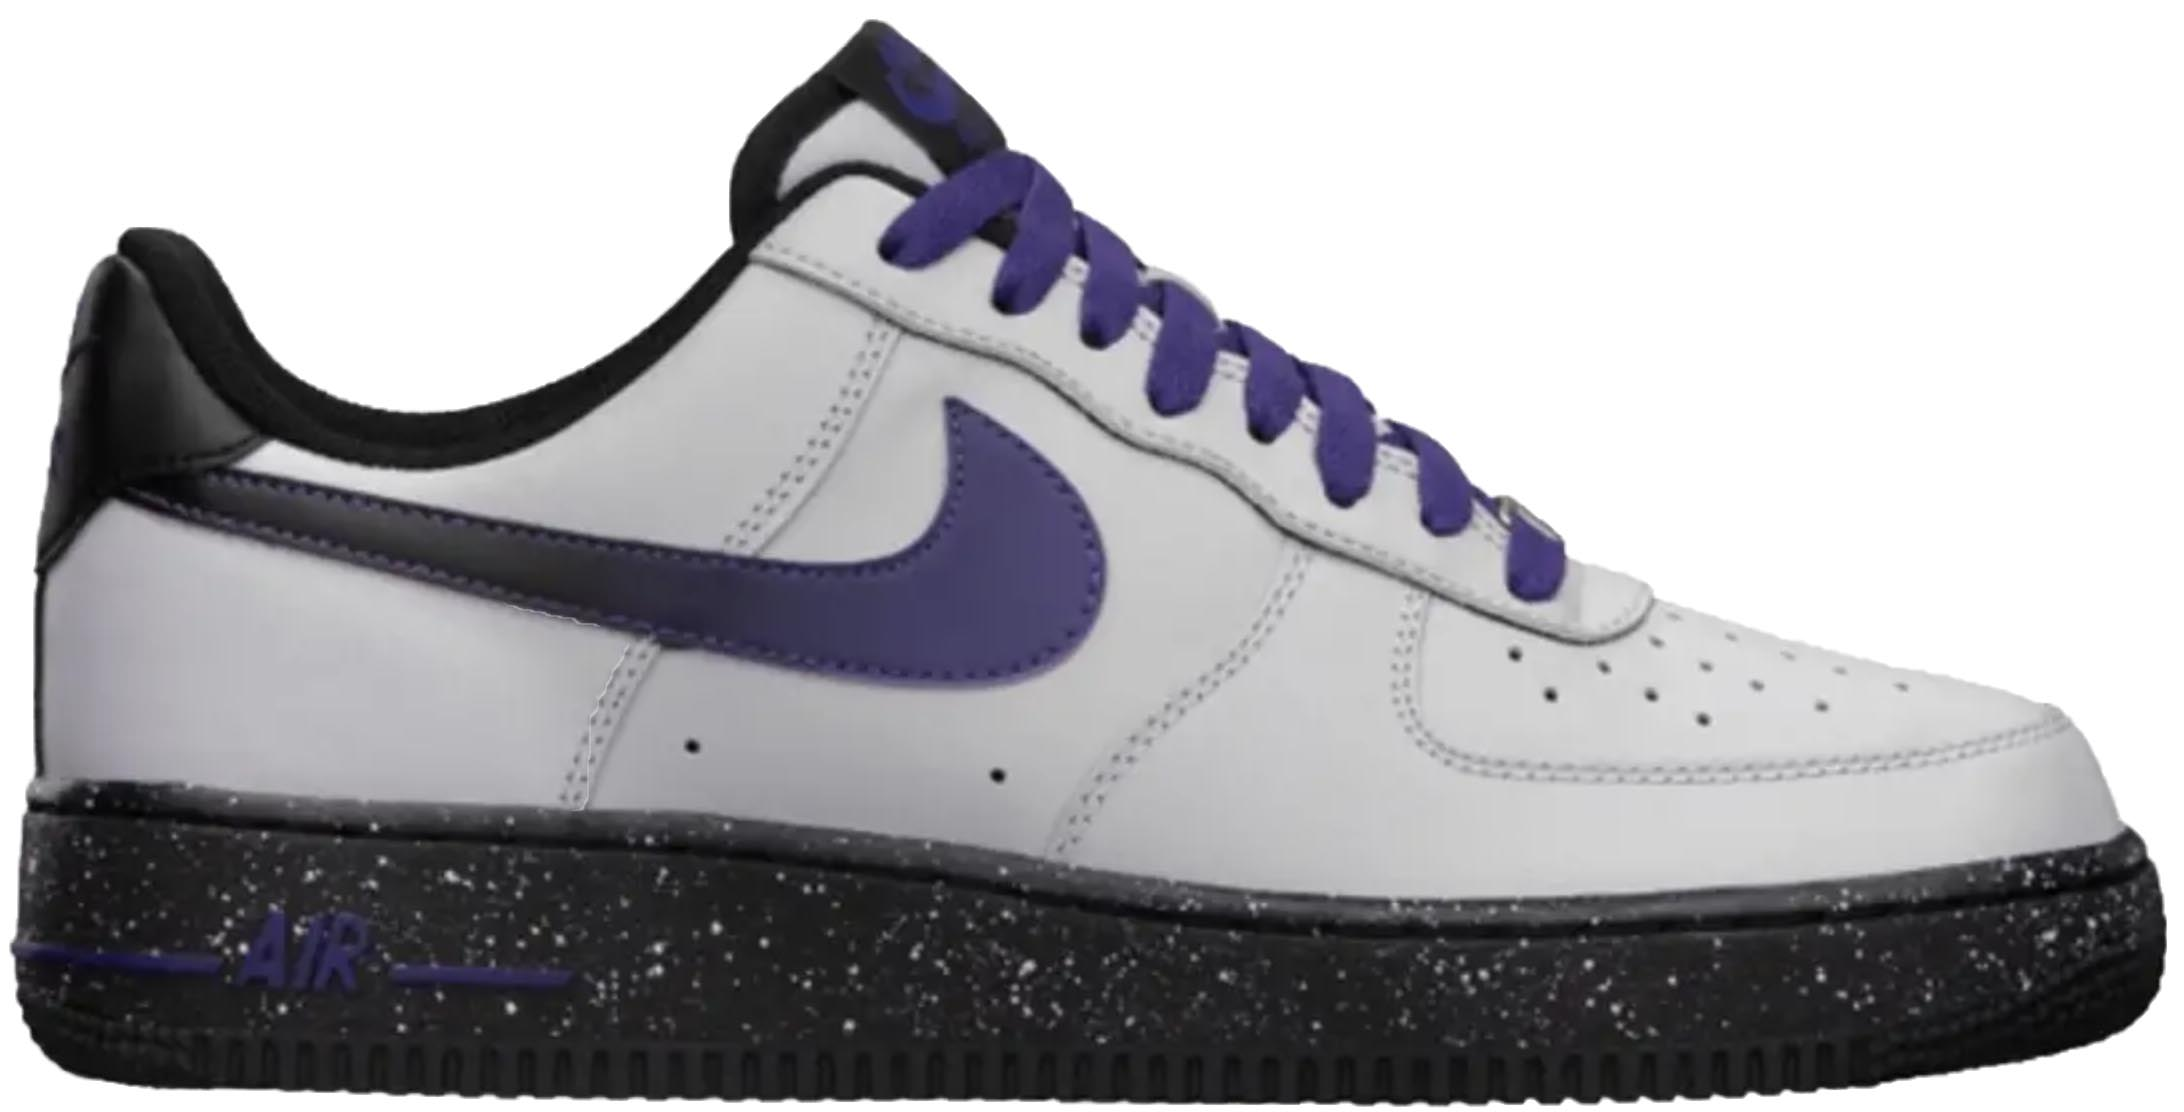 Nike Air Force 1 Low Wolf Grey Court Purple - 488298-060